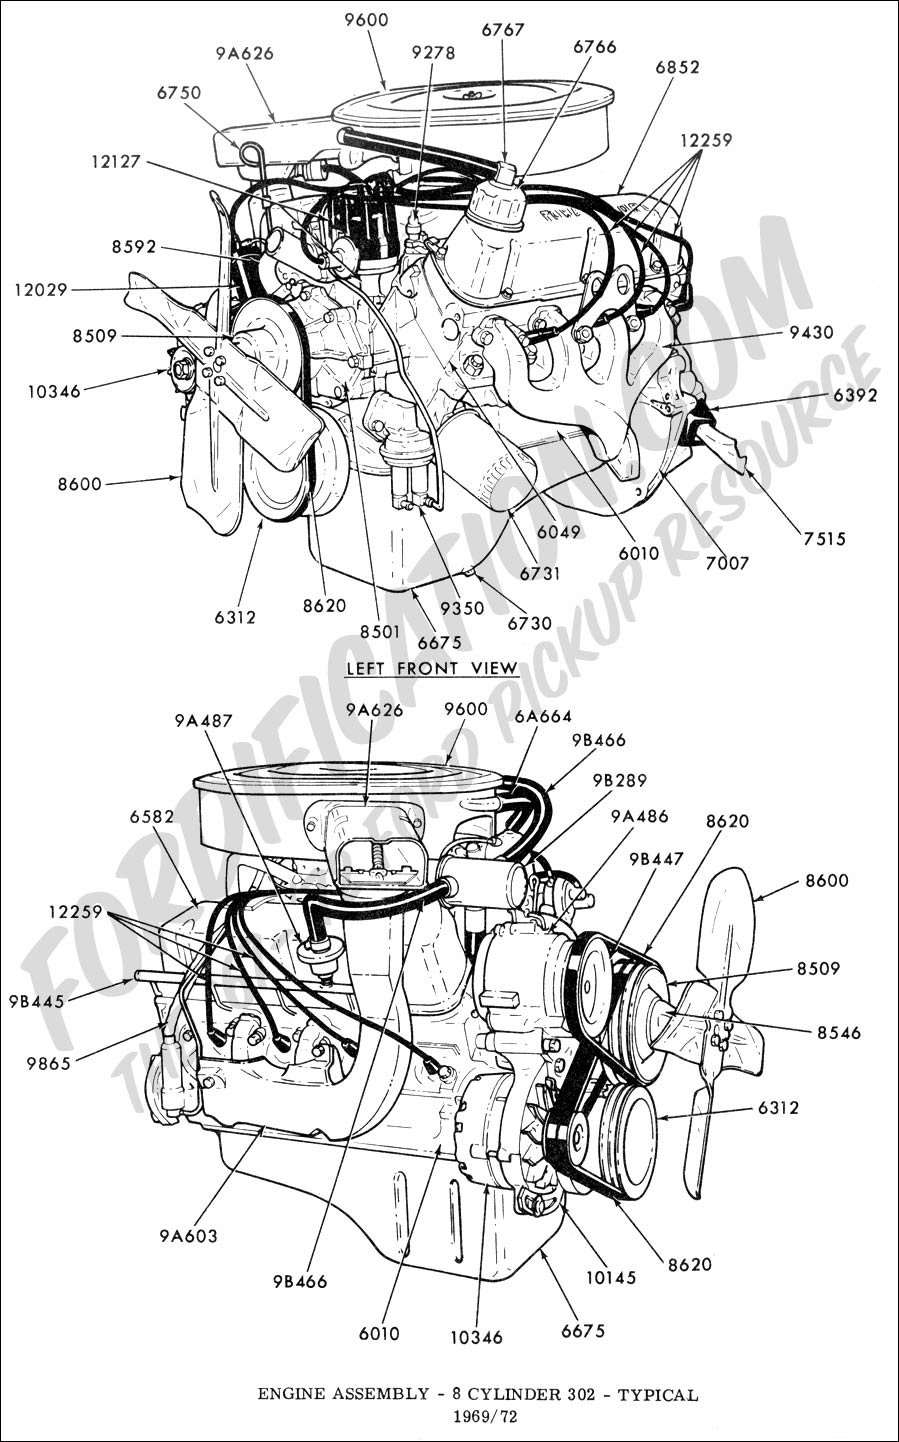 1986 Mustang Gt Engine Diagram Wiring Diagrams 86 Library Rh 11 Evitta De Stock